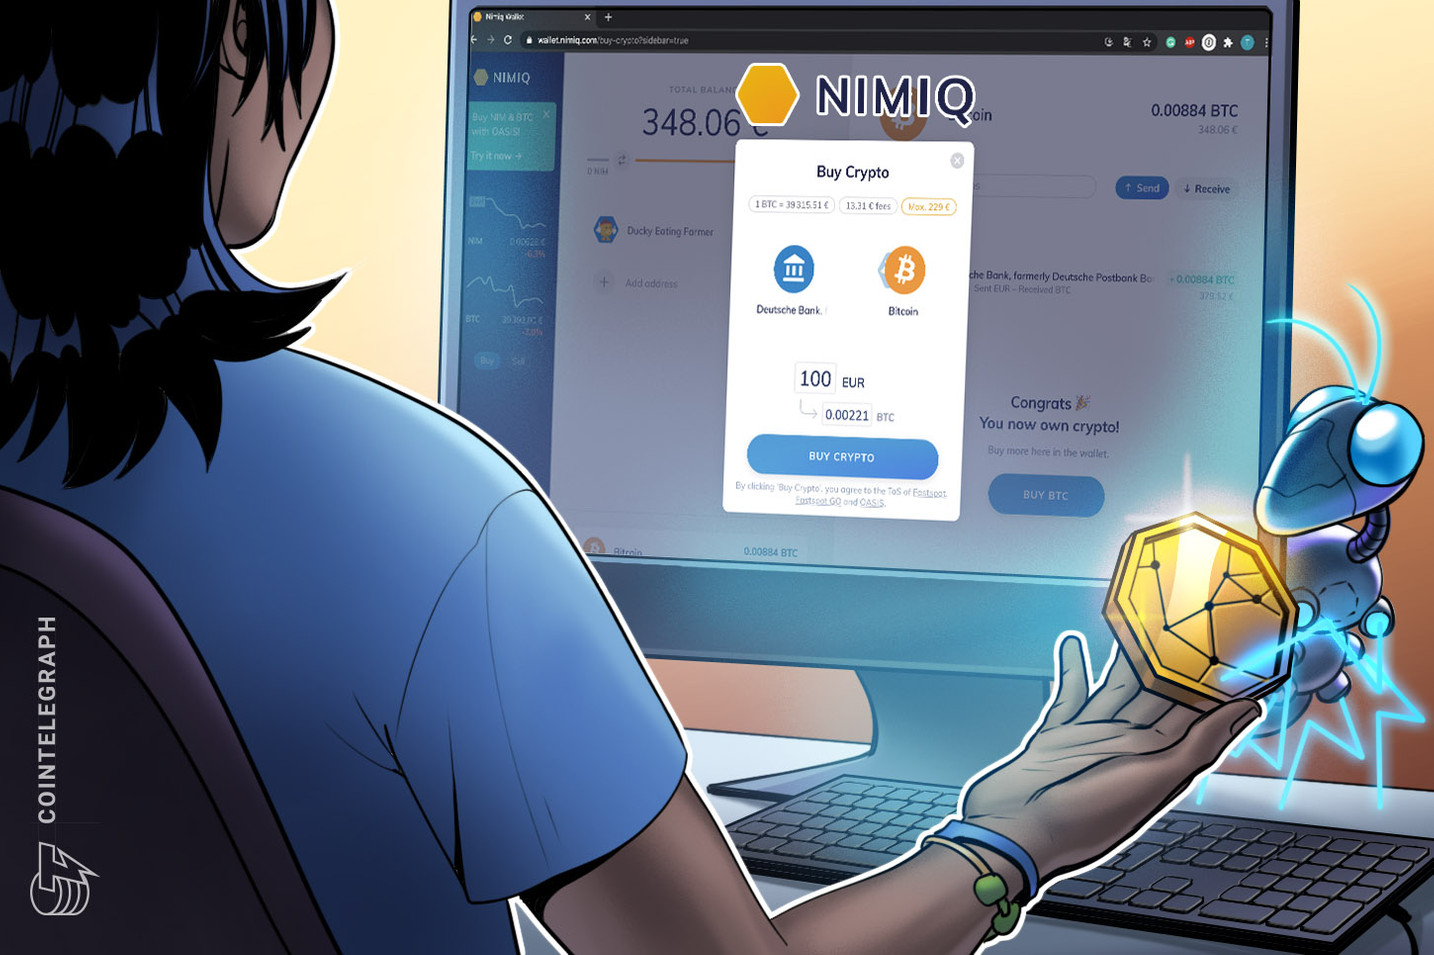 Now, you can buy crypto in minutes — directly from your bank account